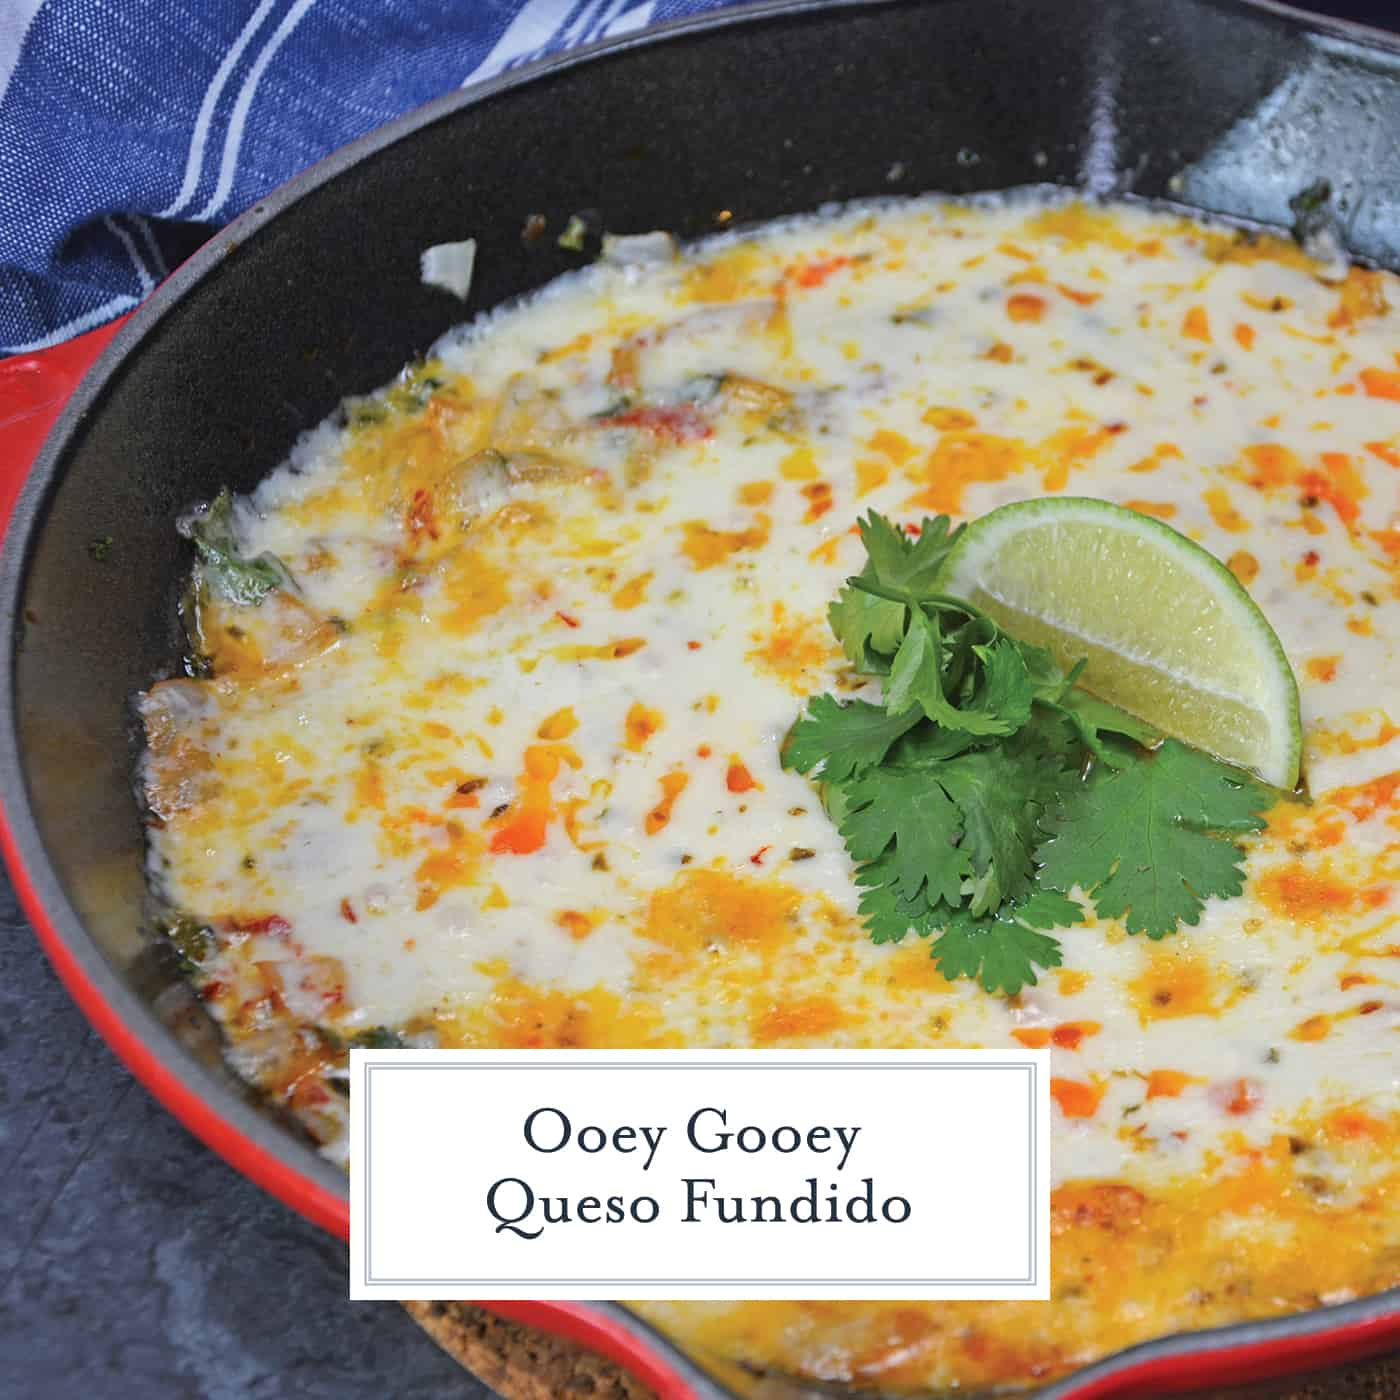 This Queso Fundido recipe is an easy Mexican cheese dip made of chopped vegetables, cilantro, chile powder and shredded cheddar and pepper jack cheese! #quesofundido #mexicancheesedip www.savoryexperiments.com